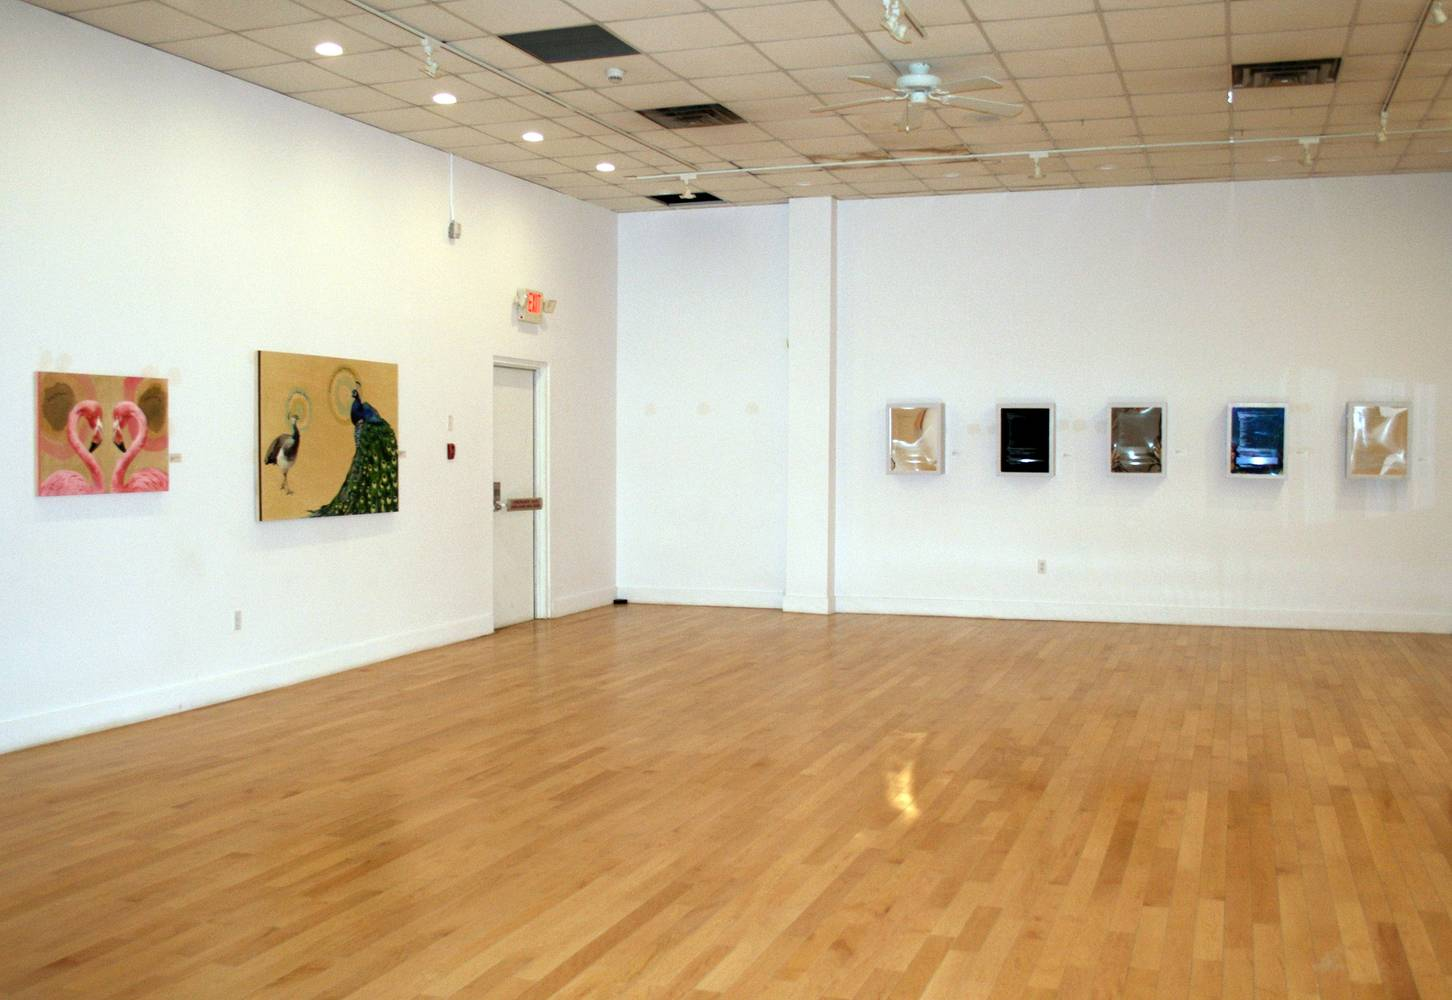 installation view of  I'll show you mine, if you show me yours: Love in the modern age, Estevan Art Gallery and Museum, Estevan Saskatchewan Canada by Belinda Harrow